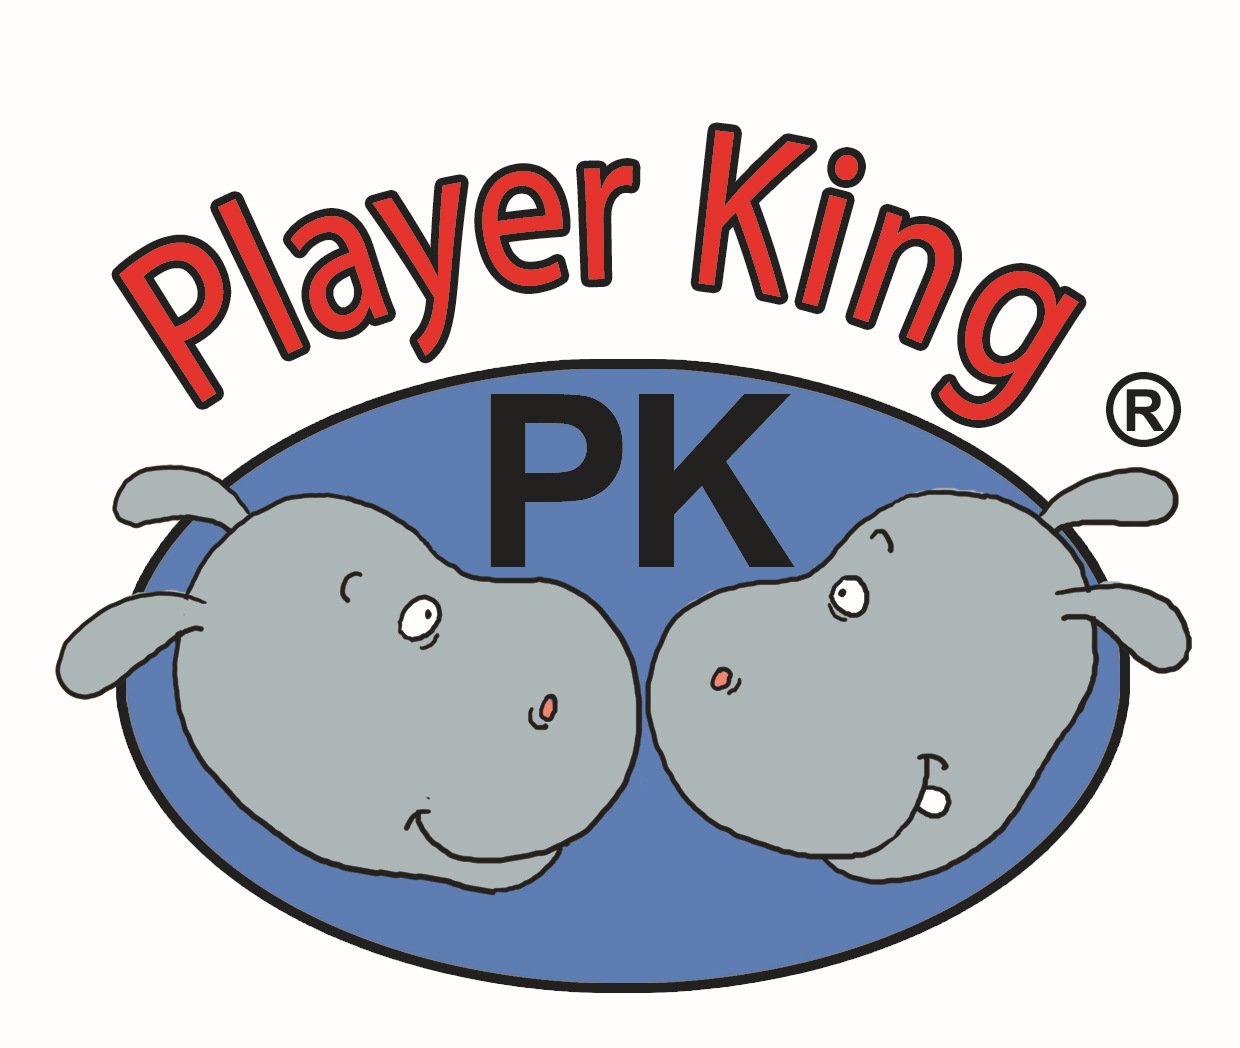 Playerking/pk益智玩具